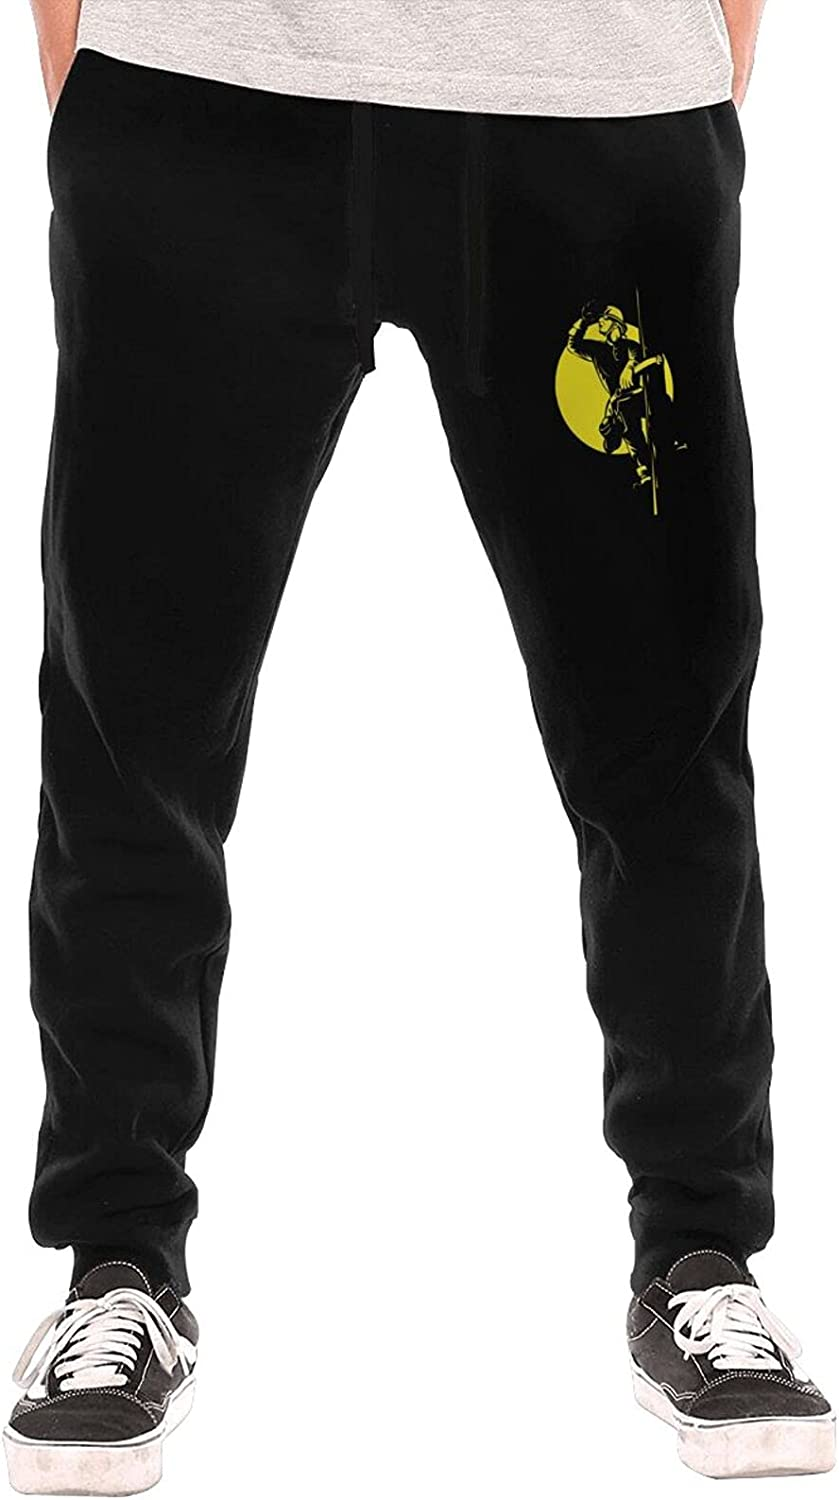 Bpauuiq Fashion Men's Sweatpants with Limited time for free shipping Bottom Fleece Pockets Max 70% OFF Open